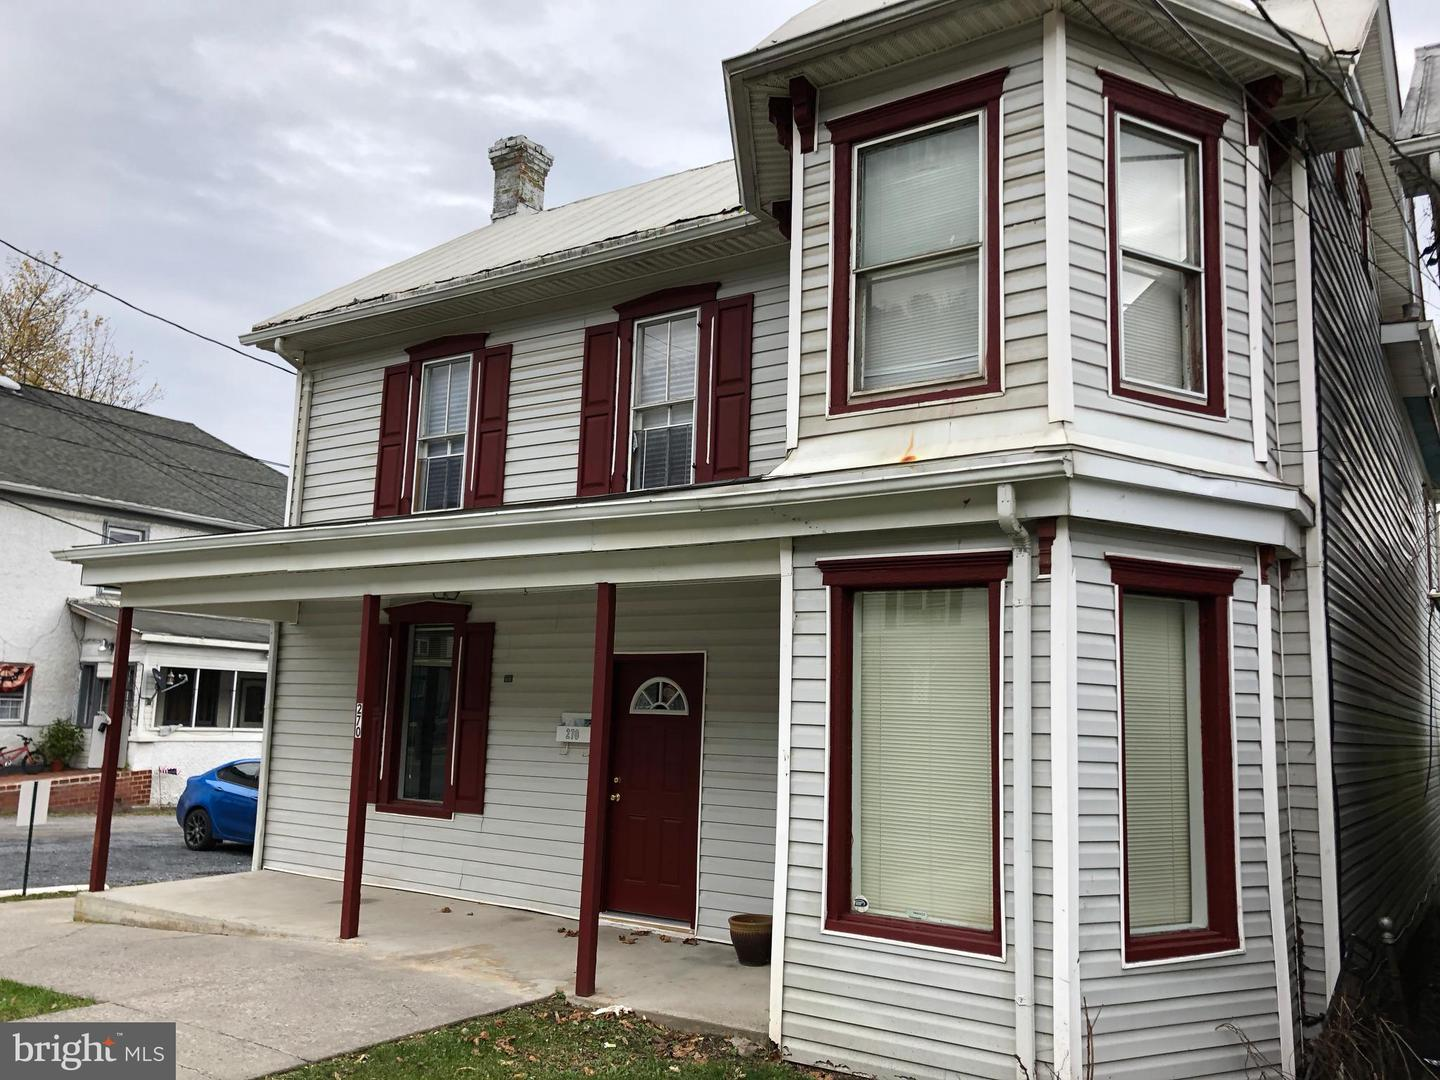 Commercial for Sale at 270 N Washington St Berkeley Springs, West Virginia 25411 United States